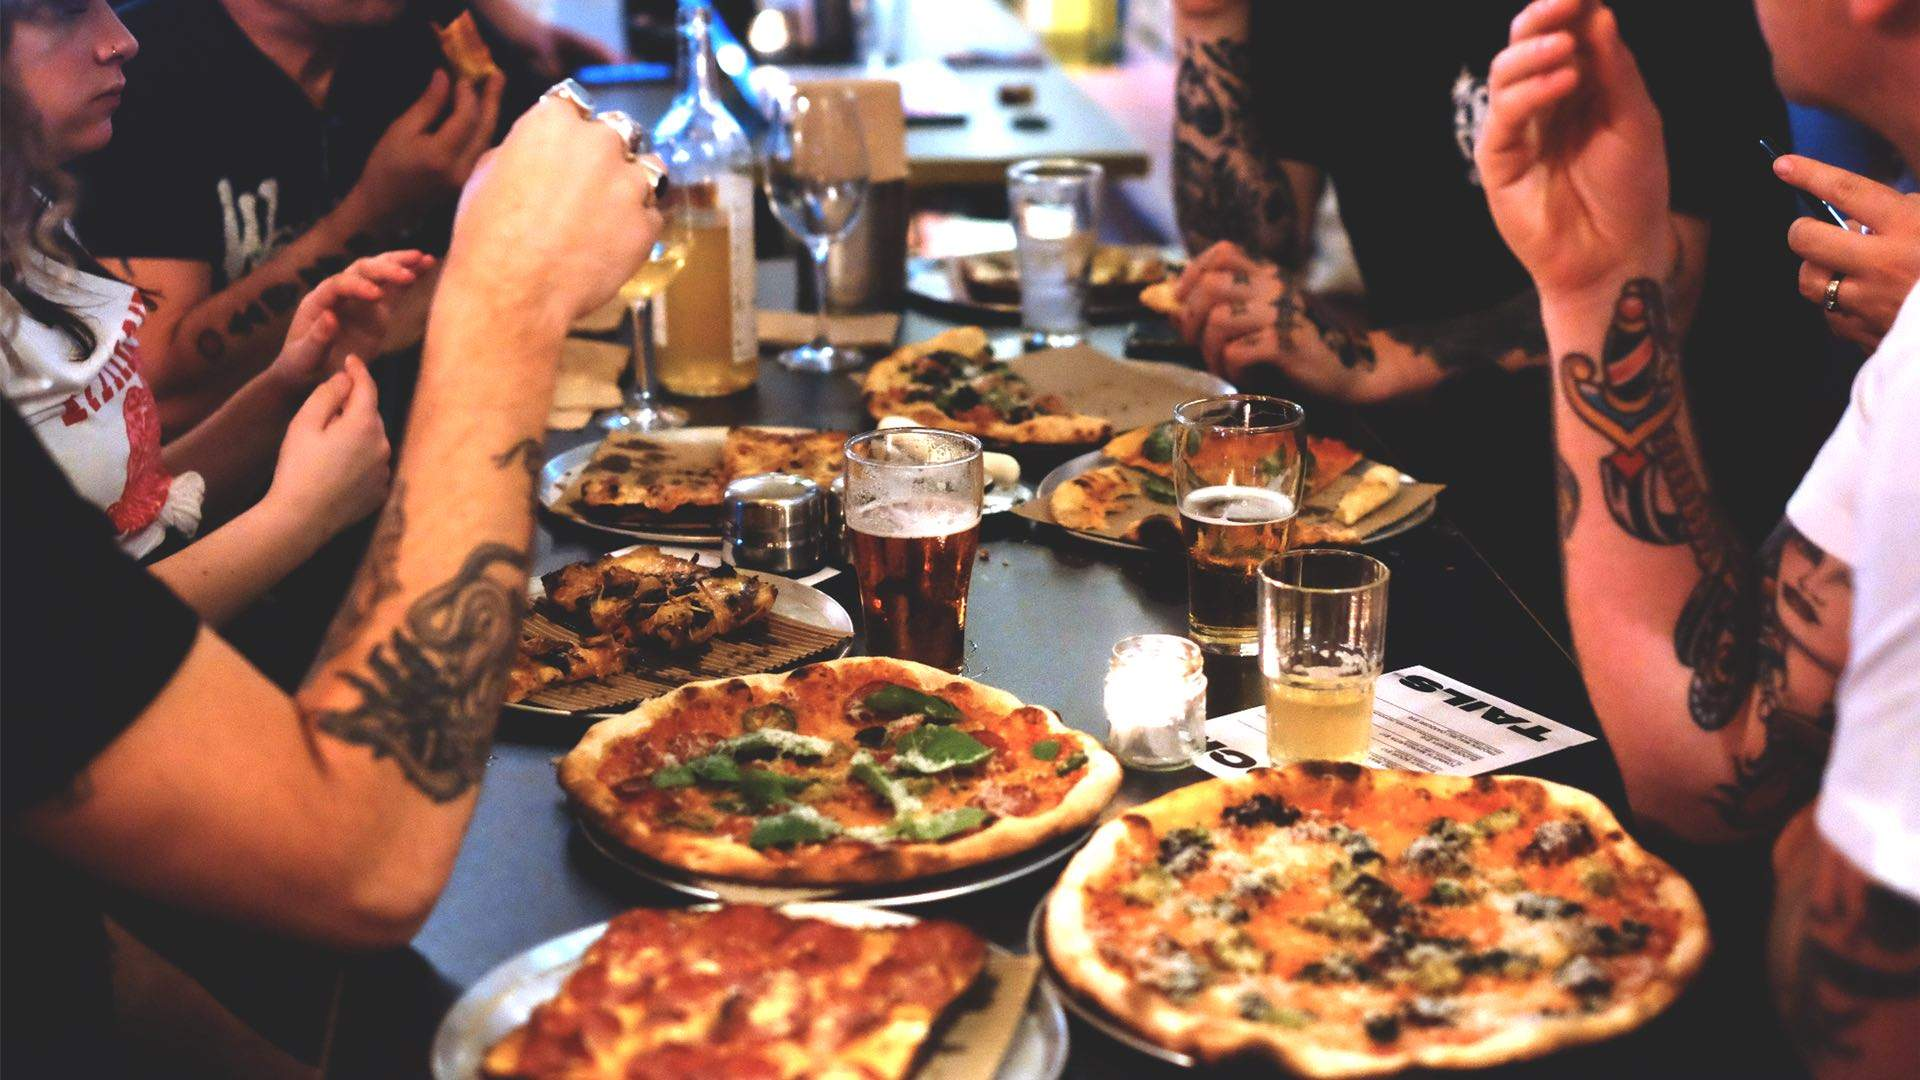 The Mary's Team Has Opened a New Pizzeria with Natural Wines in Chippendale